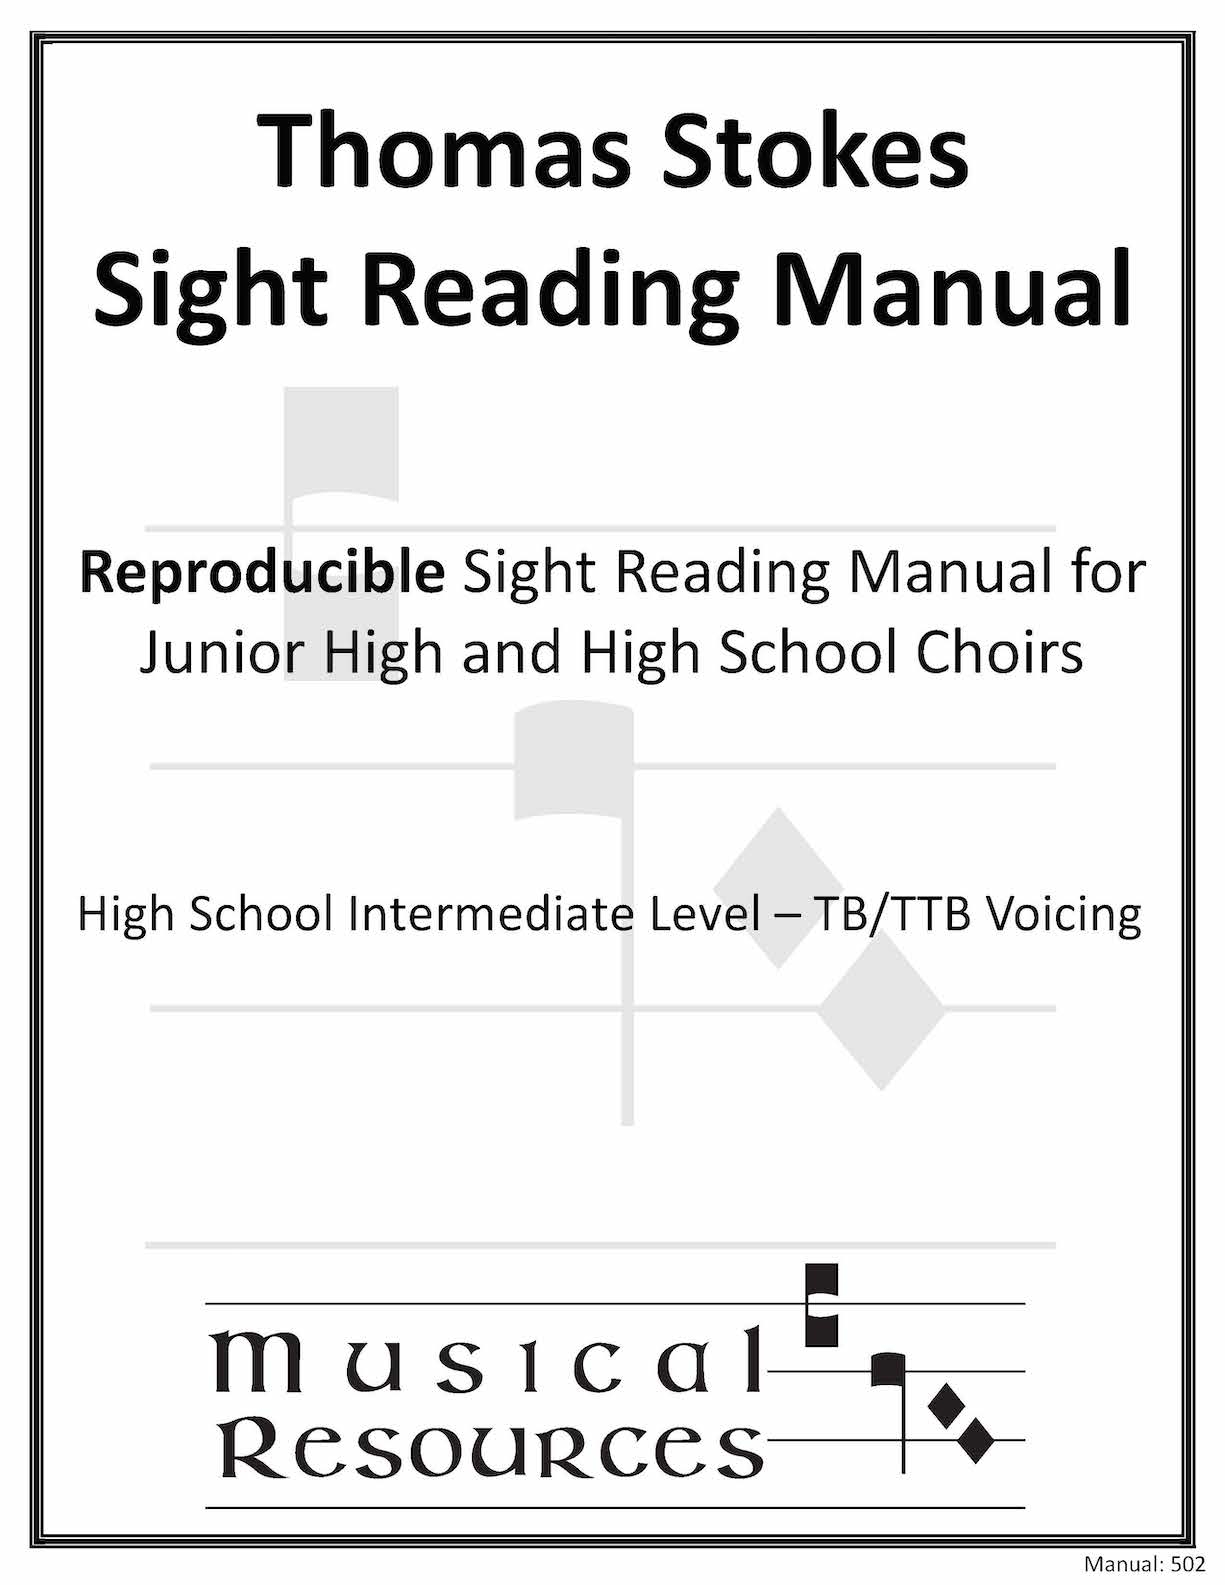 Picture of (Digital) Thomas Stokes Sightreading Manual #502 - TB/TTB High School Intermediate